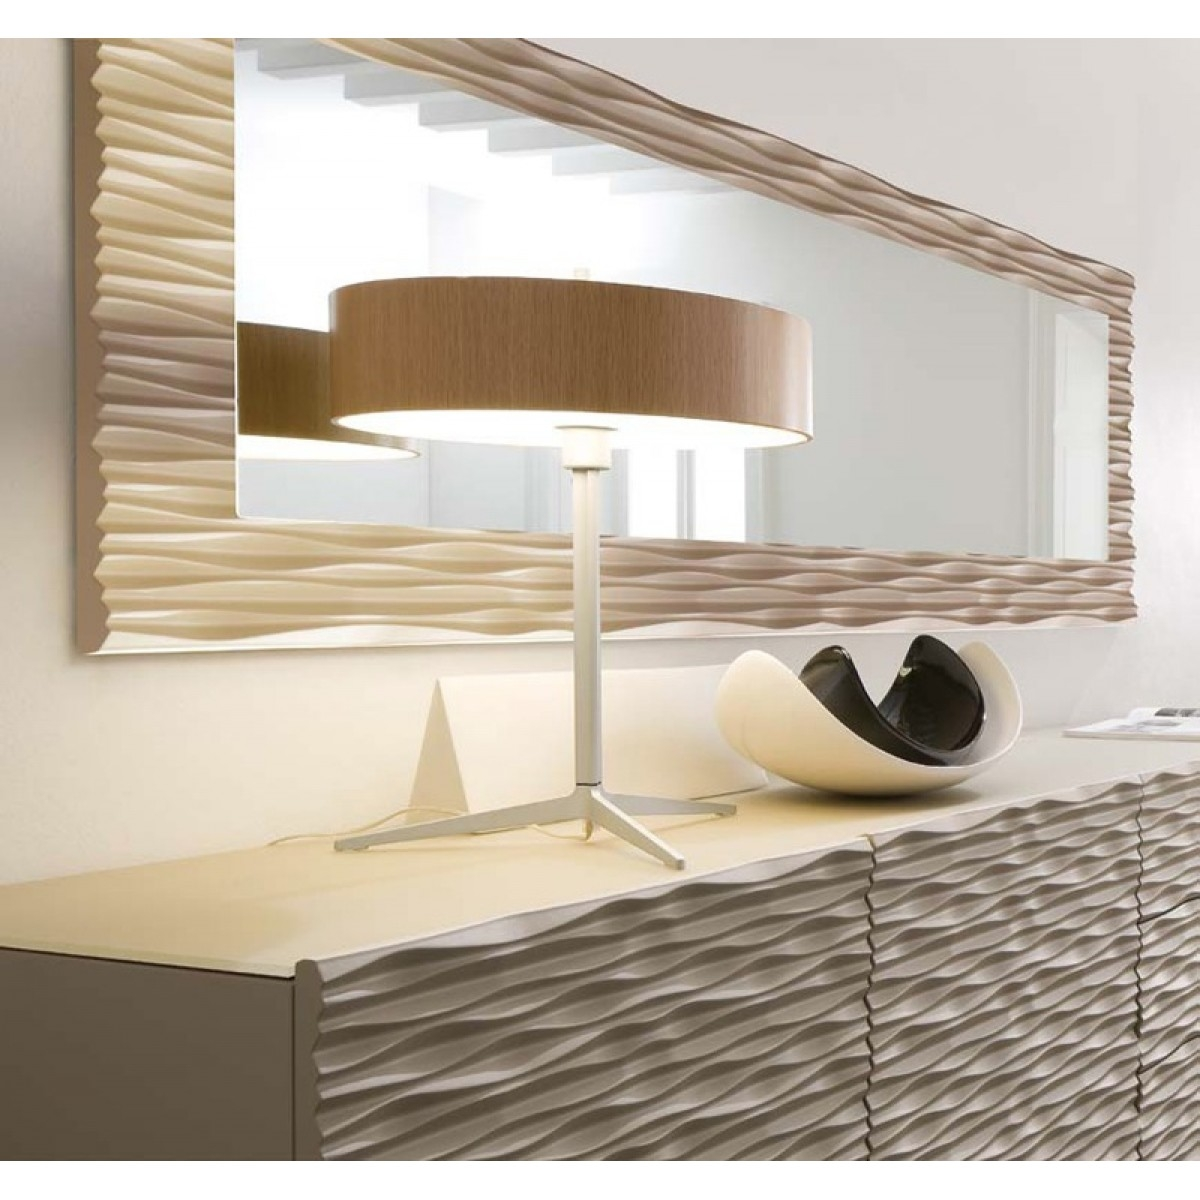 Download Large Designer Wall Mirrors Sandiegoduathlon With Regard To Large Contemporary Mirror (View 9 of 15)